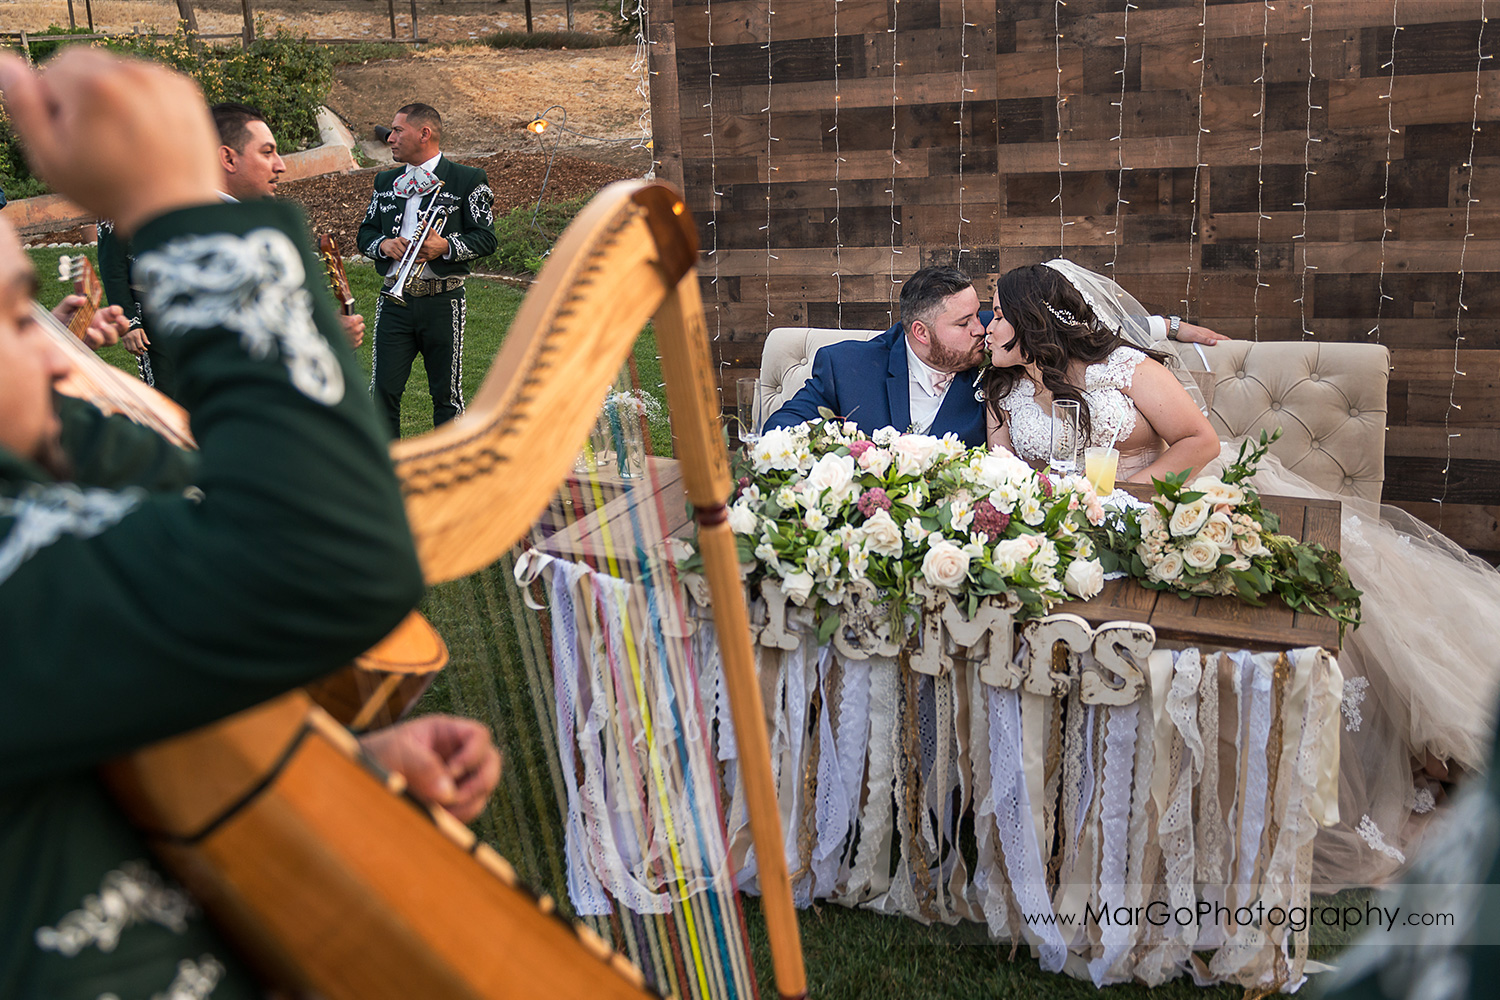 bride and groom kissing at sweetheart table during outdoor wedding recetpion at Taber Ranch Vineyards